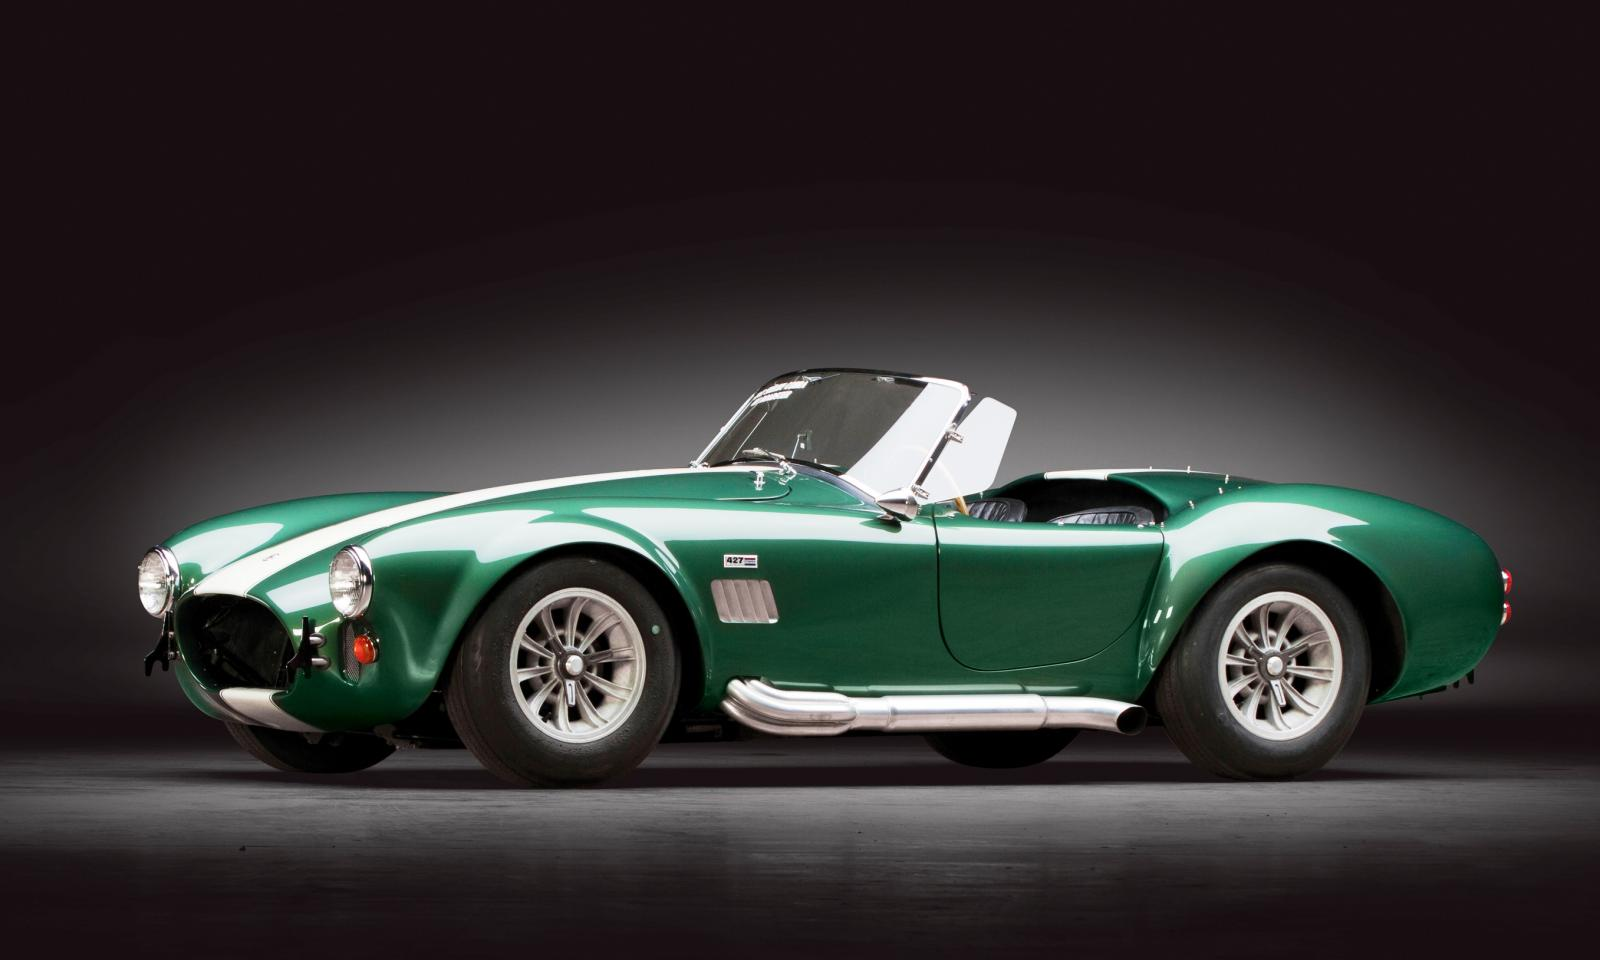 Rm Dallas Preview - ORIGINAL 1967 Shelby 427 Cobra Estimated at $1MM+ 1